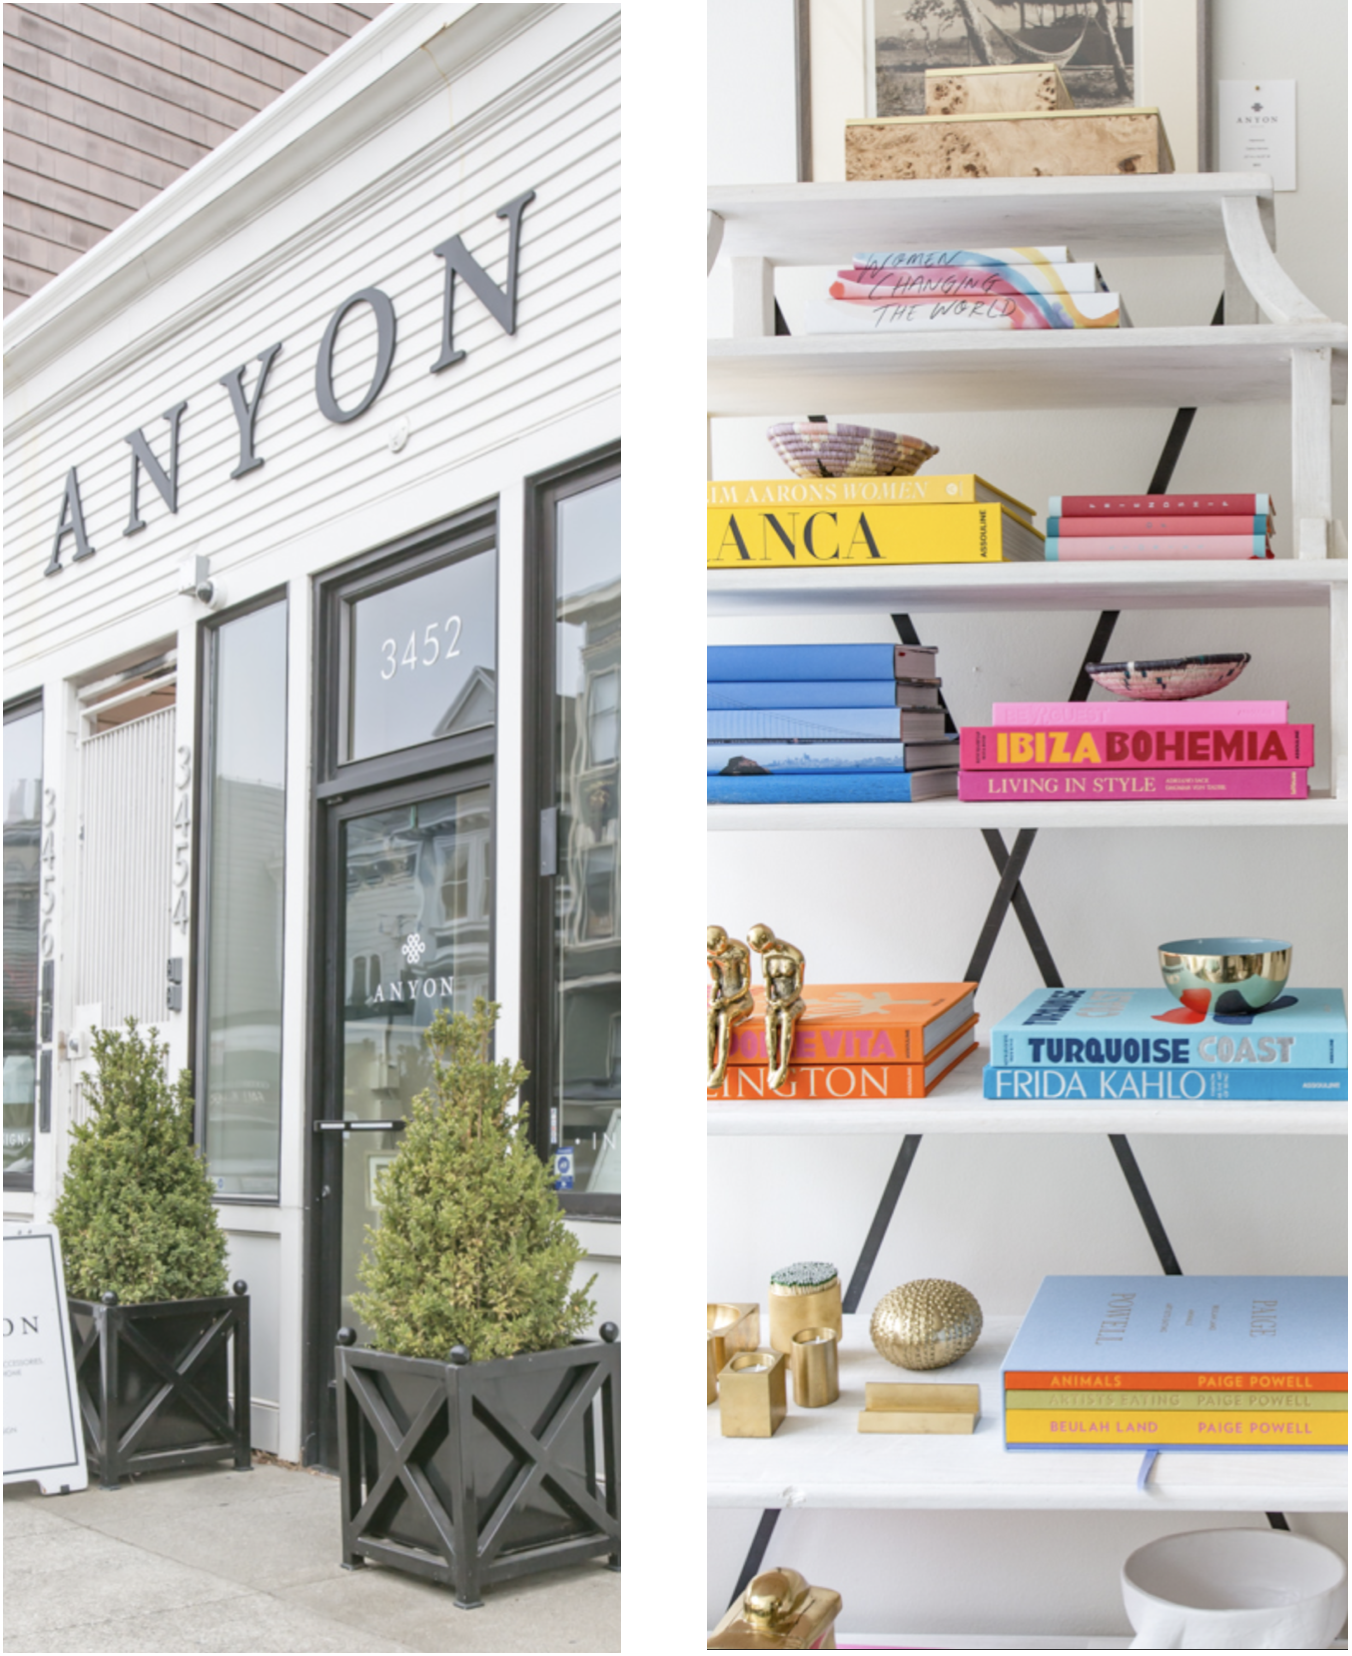 Anyon Atelier - Walking into Anyon is an instant dose of happiness. Surrounded by beautiful things at every turn that are always changing, you'll find no-brainer buys and investment pieces alike. Anyon curates a wonderful selection of vibrant books, accessories, and furnishings, as well as an exciting mix of photography.Must Buy: coffee table books, statement photography, earthy furnishingsvisit website